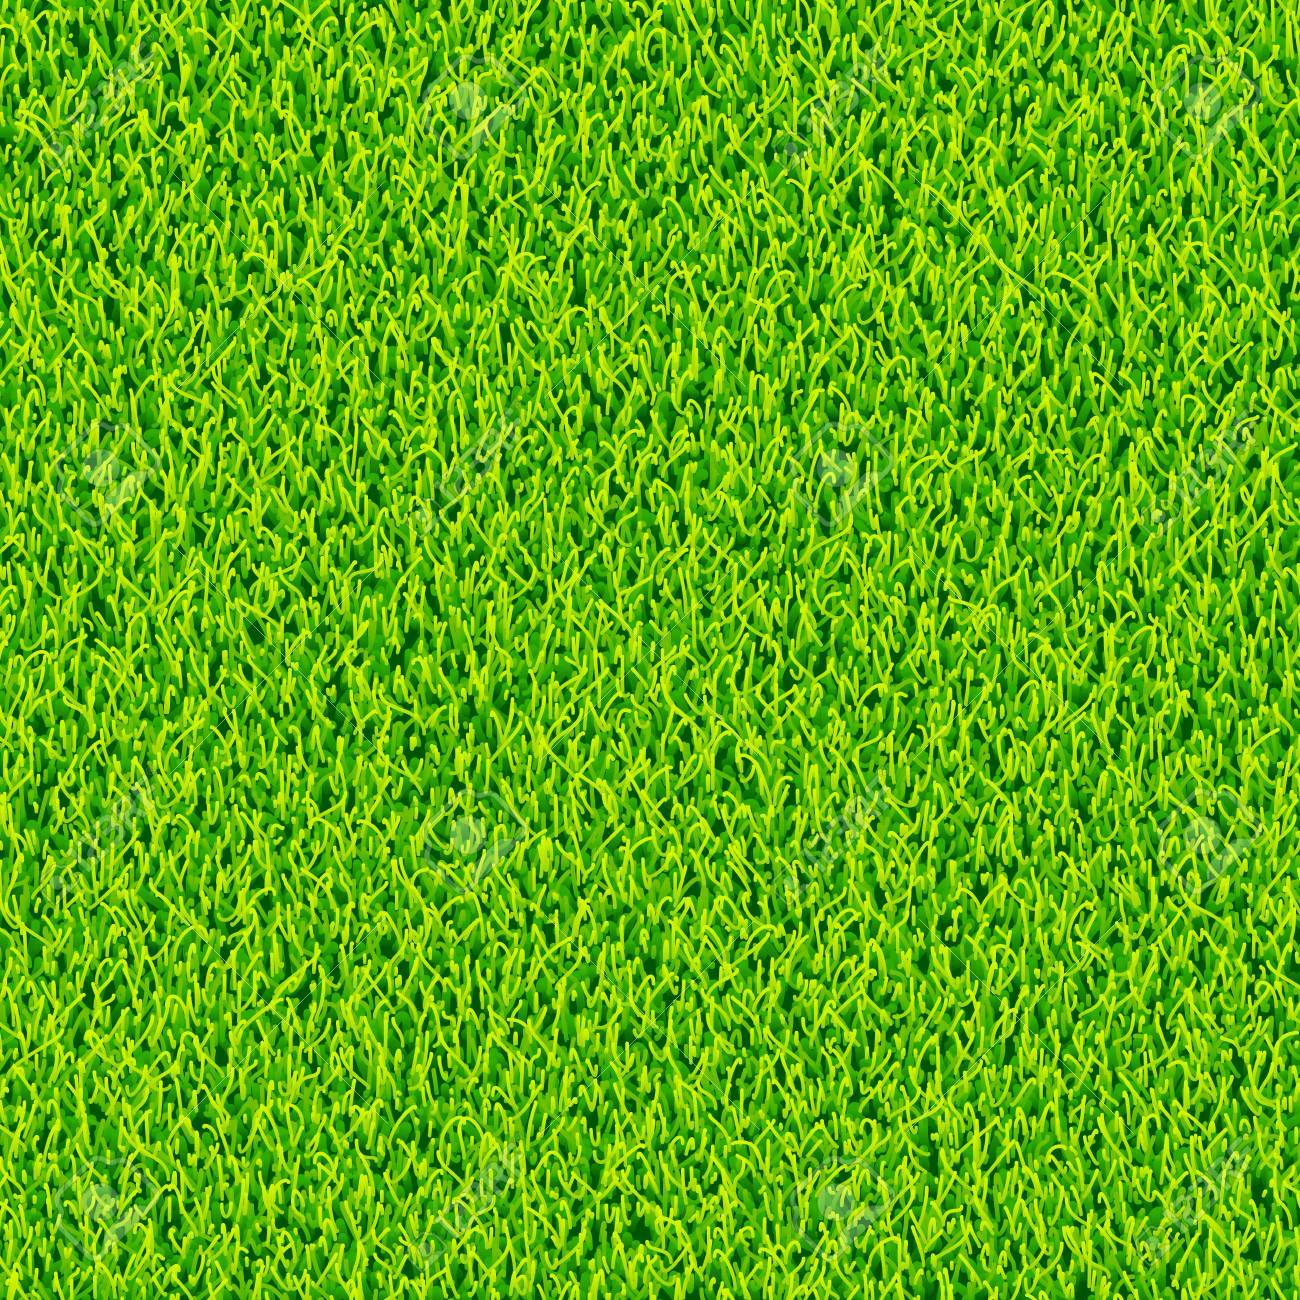 green grass background vector royalty free cliparts vectors and stock illustration image 68813797 green grass background vector